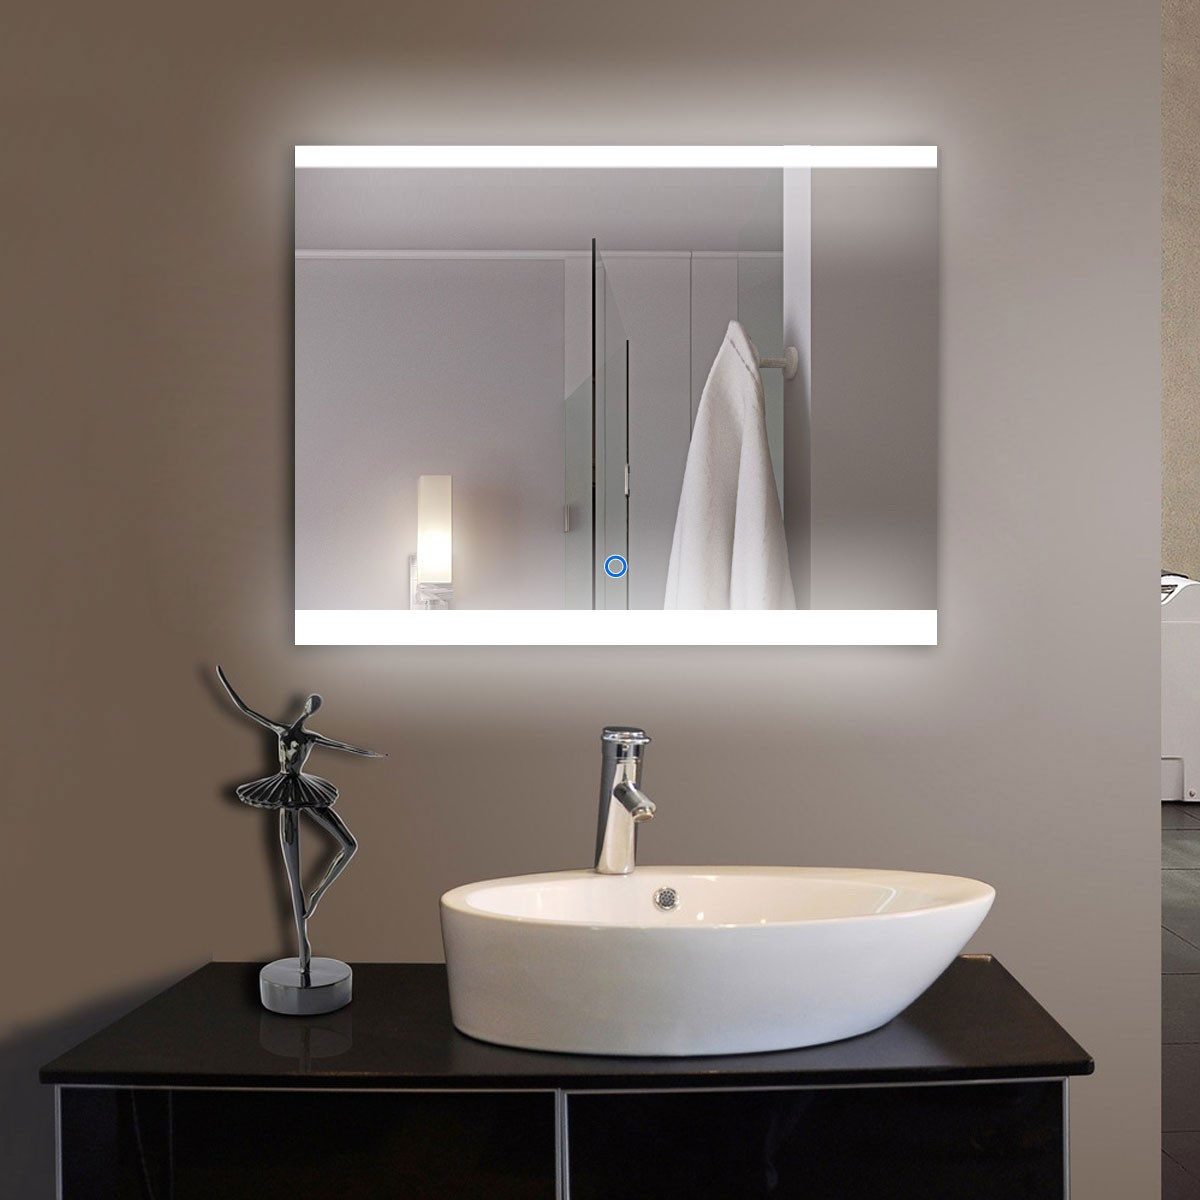 mirror mosaic vases for sale of 36 x 28 in horizontal led bathroom silvered mirror with touch button with 36 x 28 in horizontal led bathroom mirror with touch button dk od